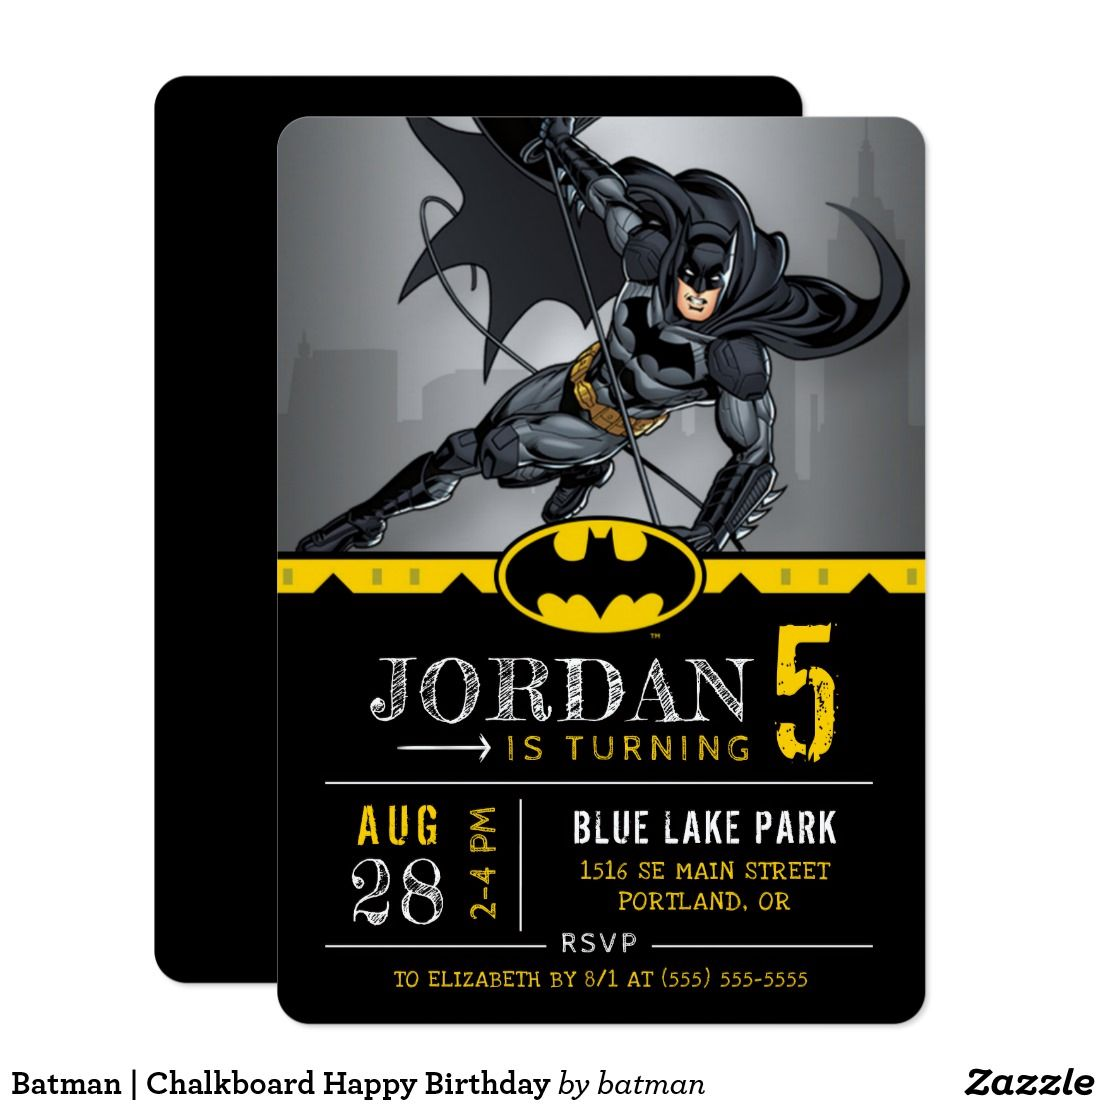 Batman chalkboard happy birthday invitation everyones favorite superhero batman proves that you dont need super powers to be a superhero in these cool